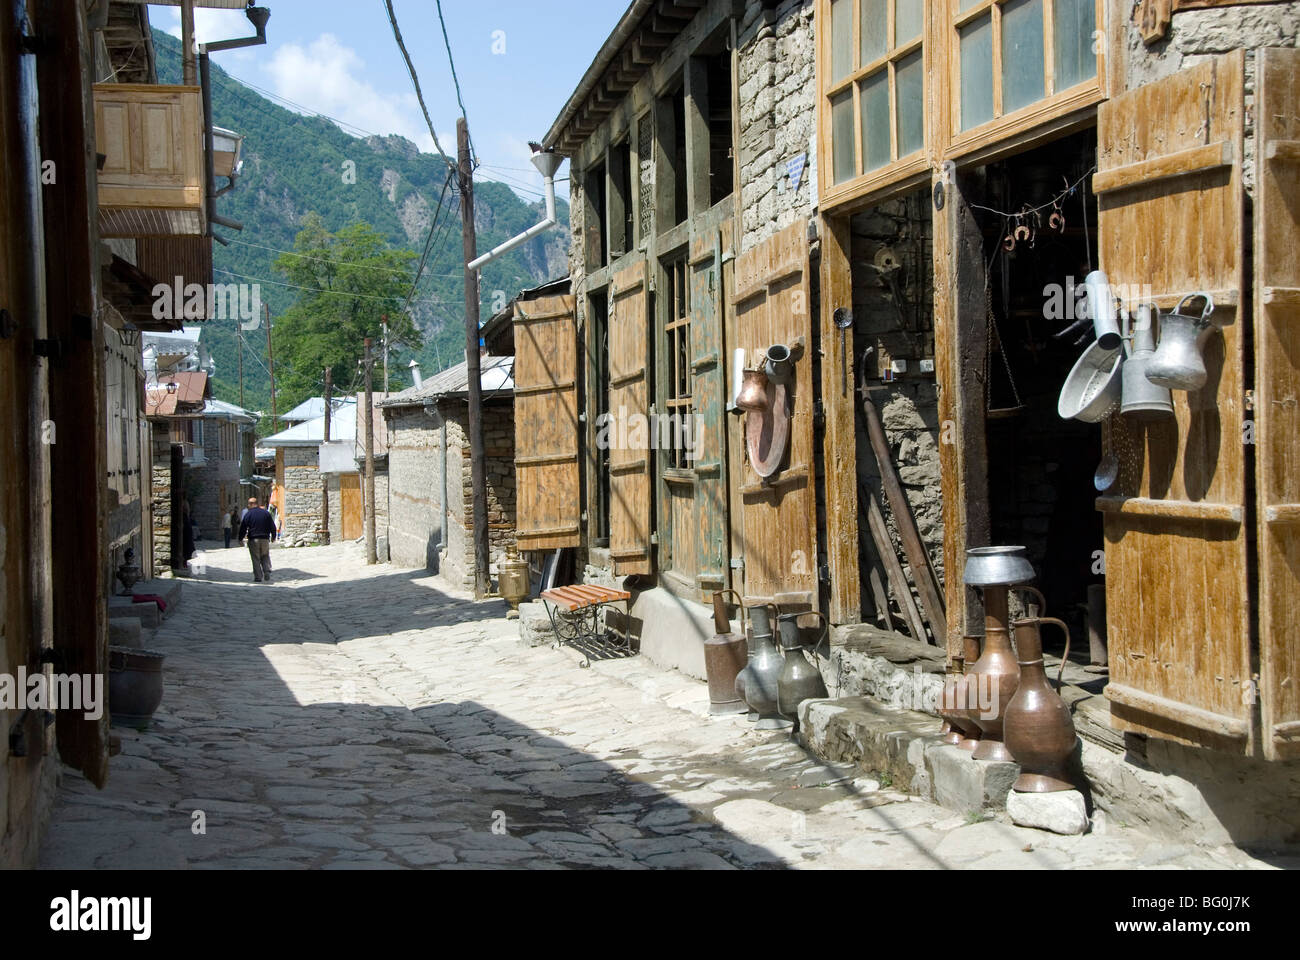 Lahic, traditional village in Greater Caucasus Mountains, near Shaki, Azerbaijan, Central Asia, Asia - Stock Image